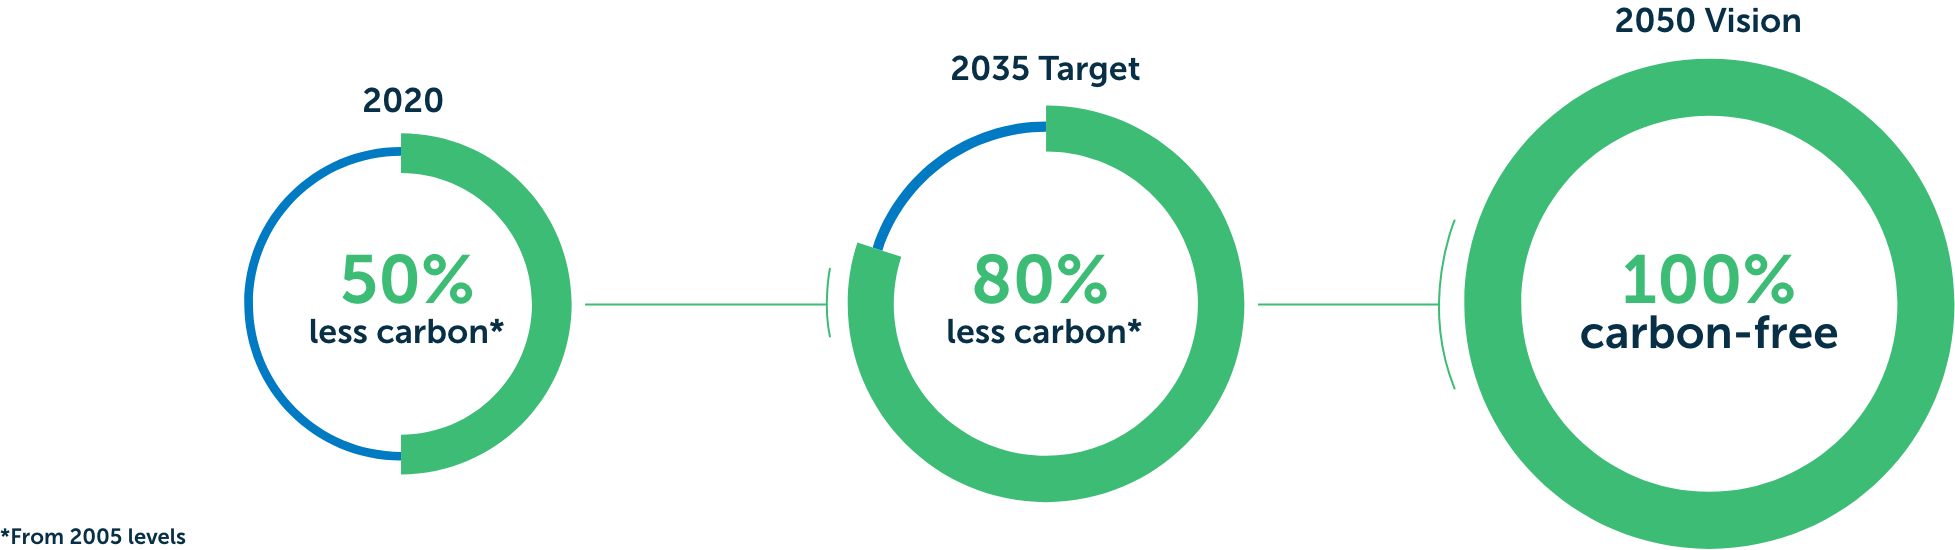 2020, 50% less carbon. 2035 target, 80% less carbon. 2050 vision, 100% carbon-free. From 2005 levels as required by state law.